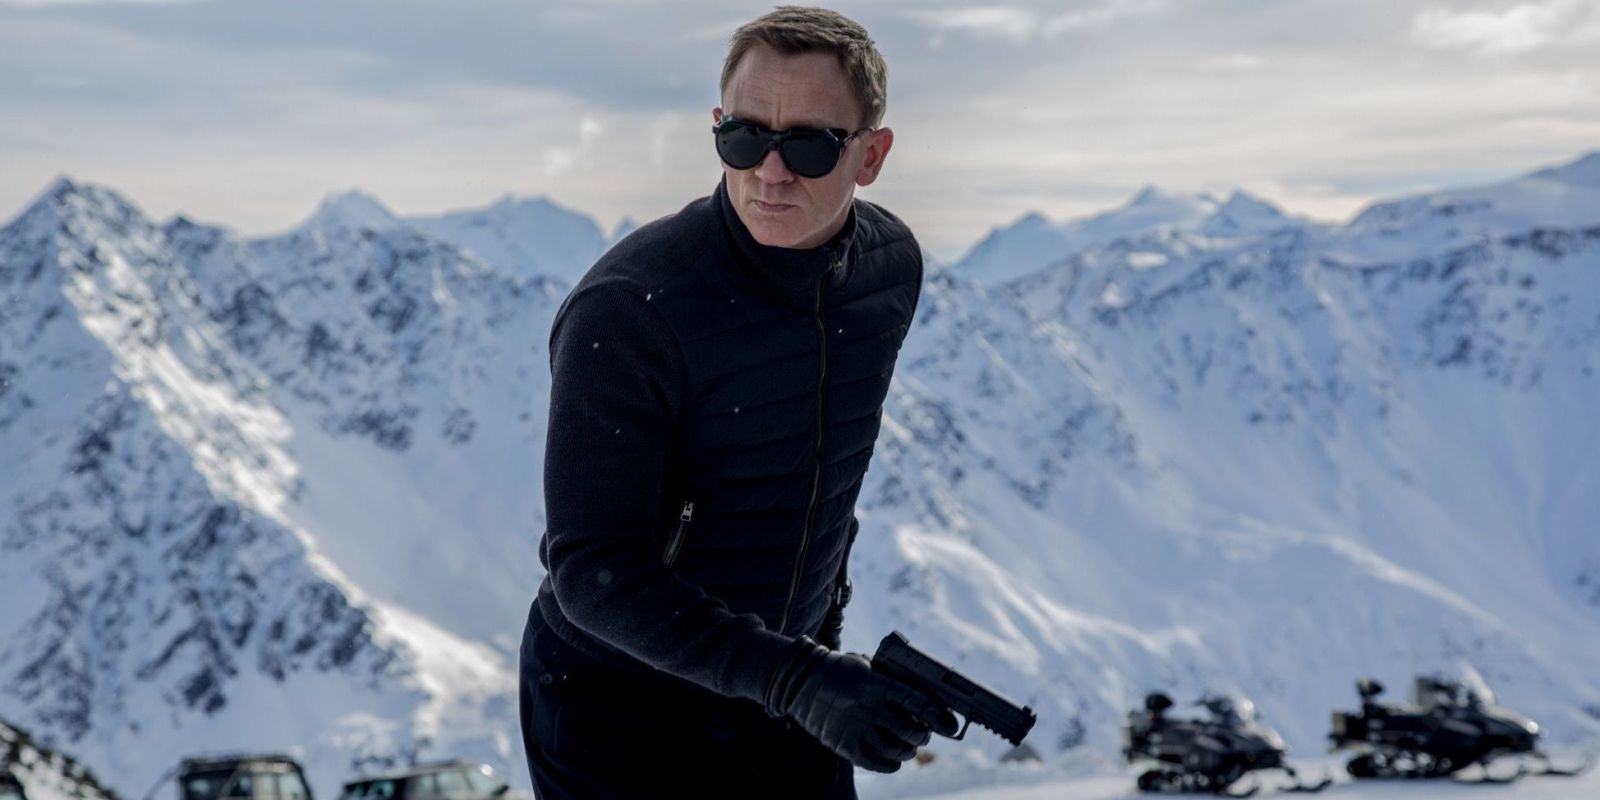 first look at james bond 39 s 39 spectre 39 teases daniel craig and a snowy car chase. Black Bedroom Furniture Sets. Home Design Ideas